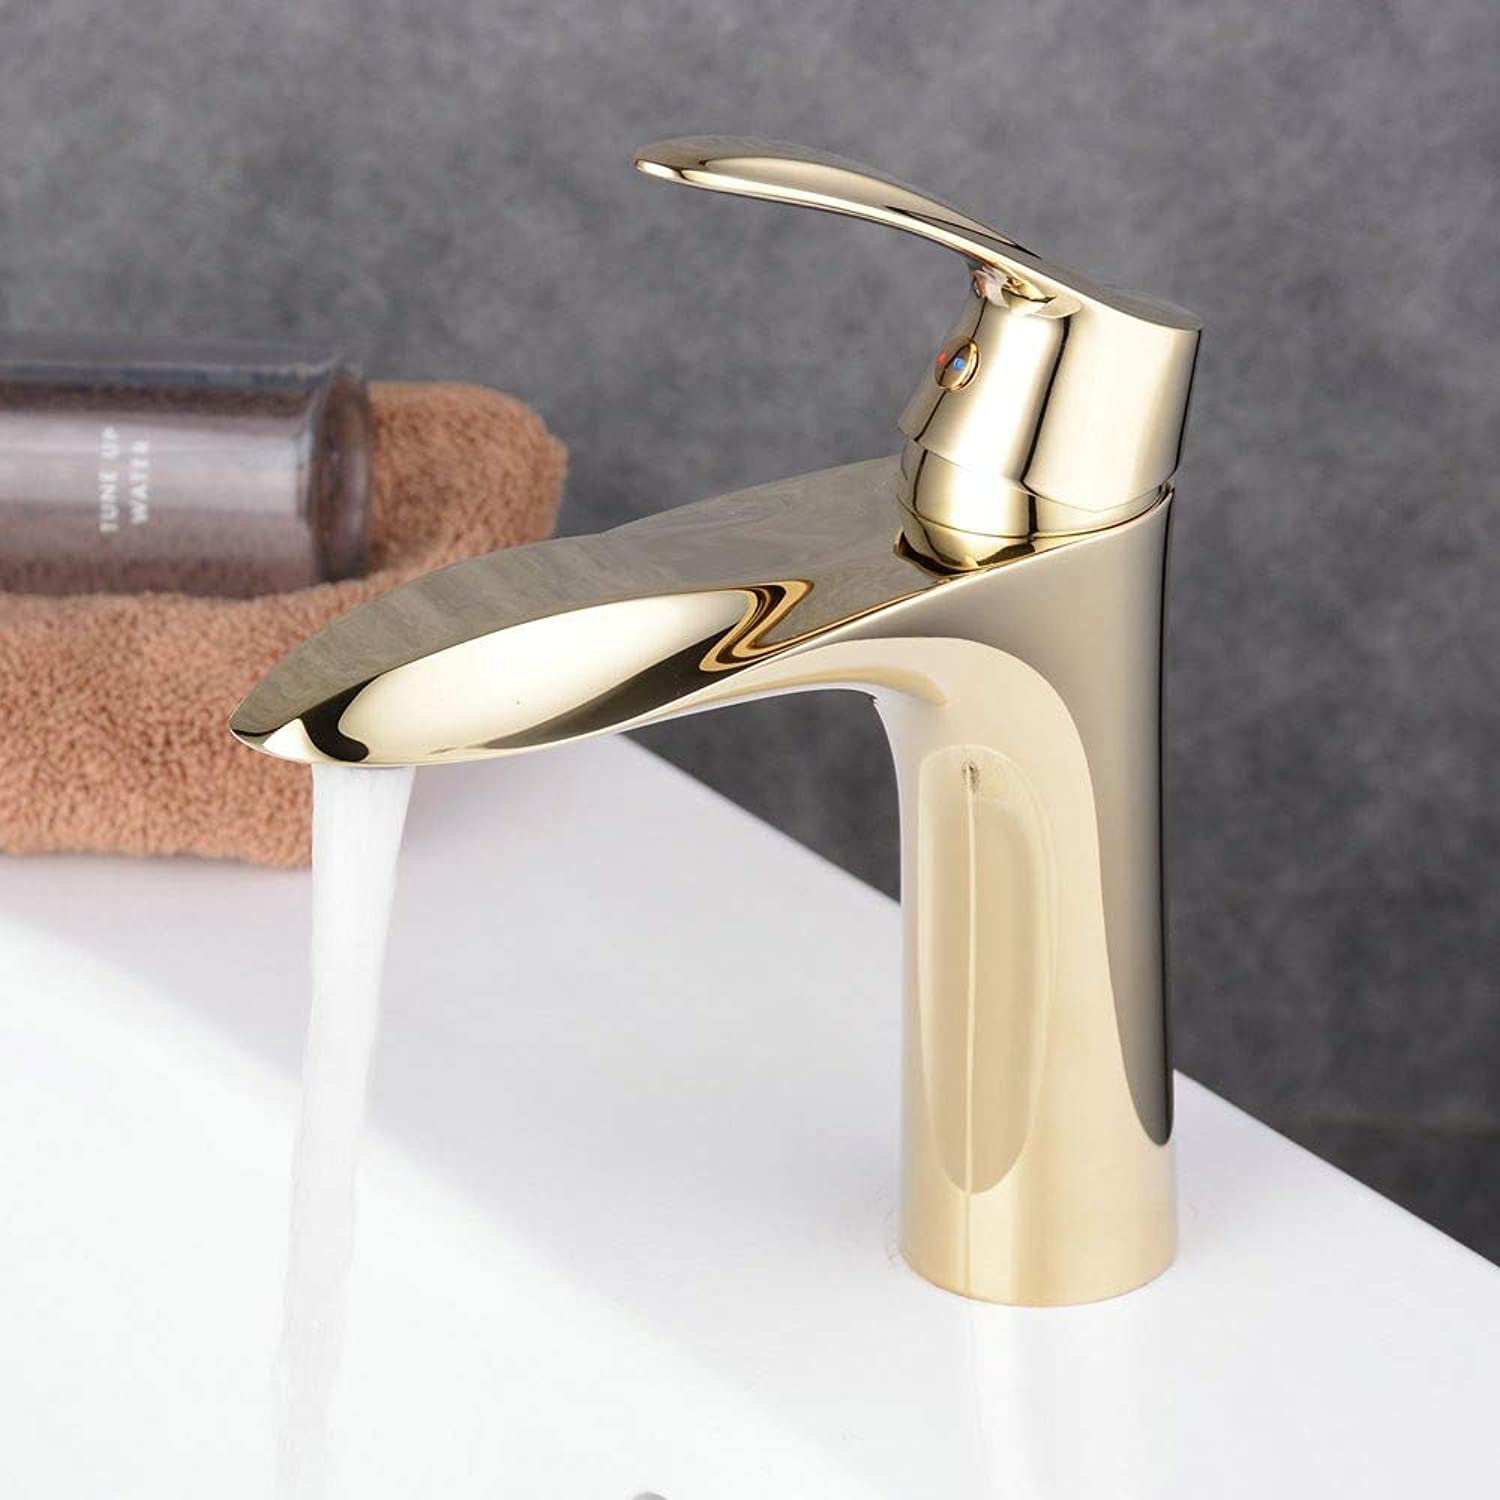 Water Tapbasin Mixer Taps for Bath and Lavatory Brass Hot and Cold Vessel gold Bathroom Sink Faucet